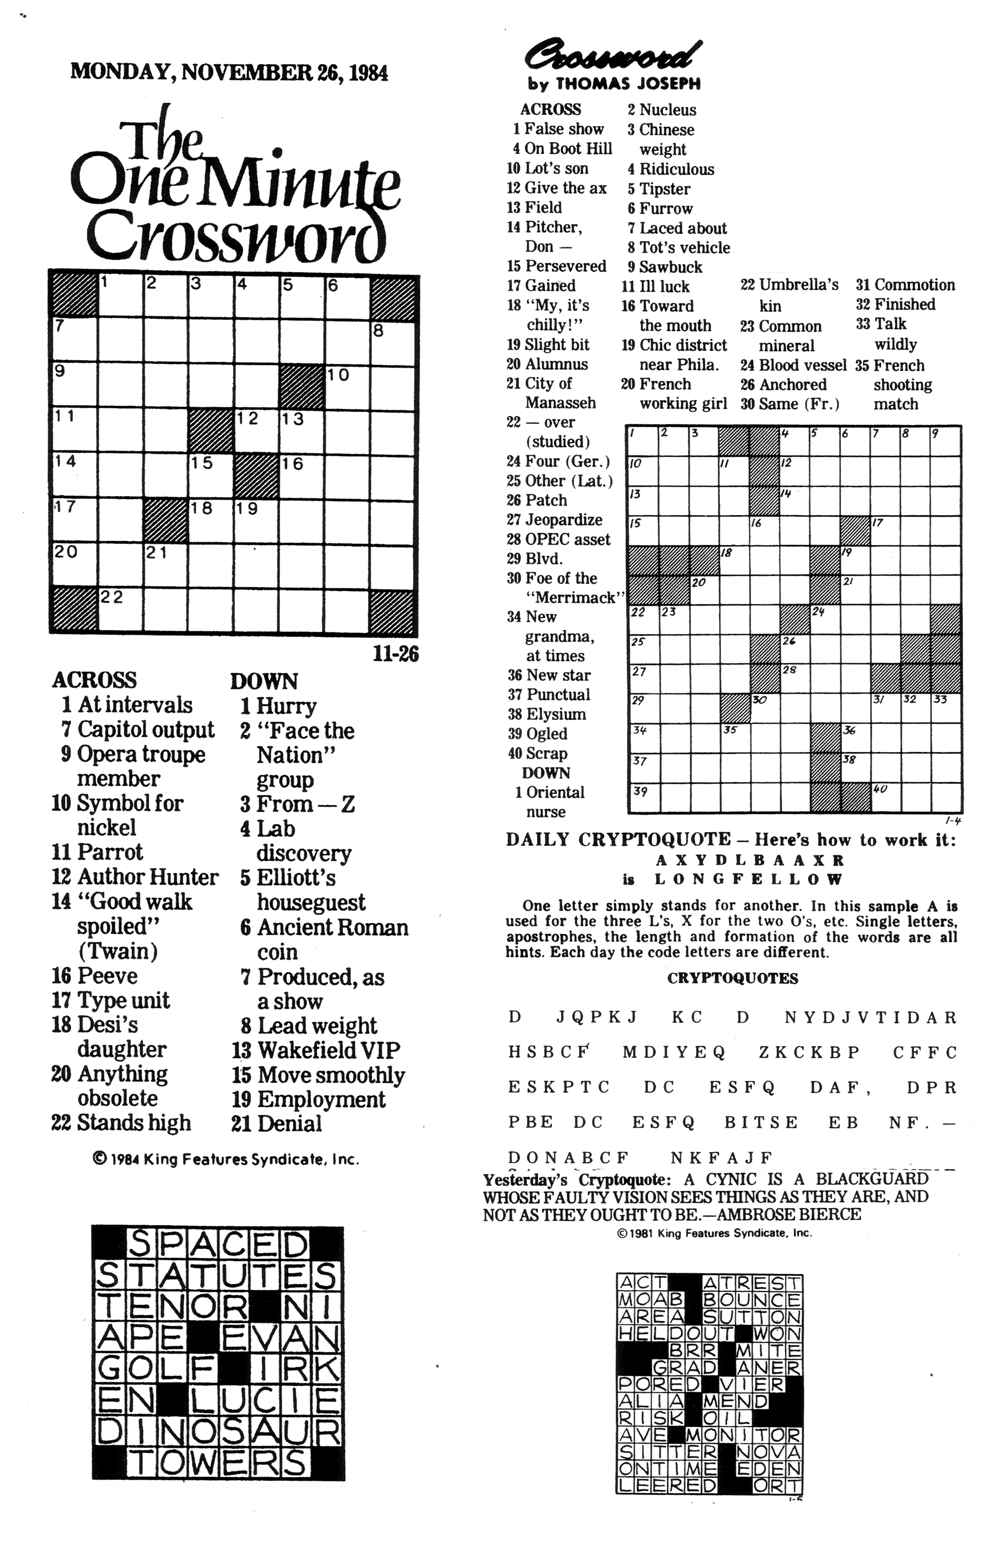 image relating to Thomas Joseph Crossword Puzzles Printable Free named Comics Kingdom - Talk to the Archivist: CROSSWORD PUZZLES - 2015